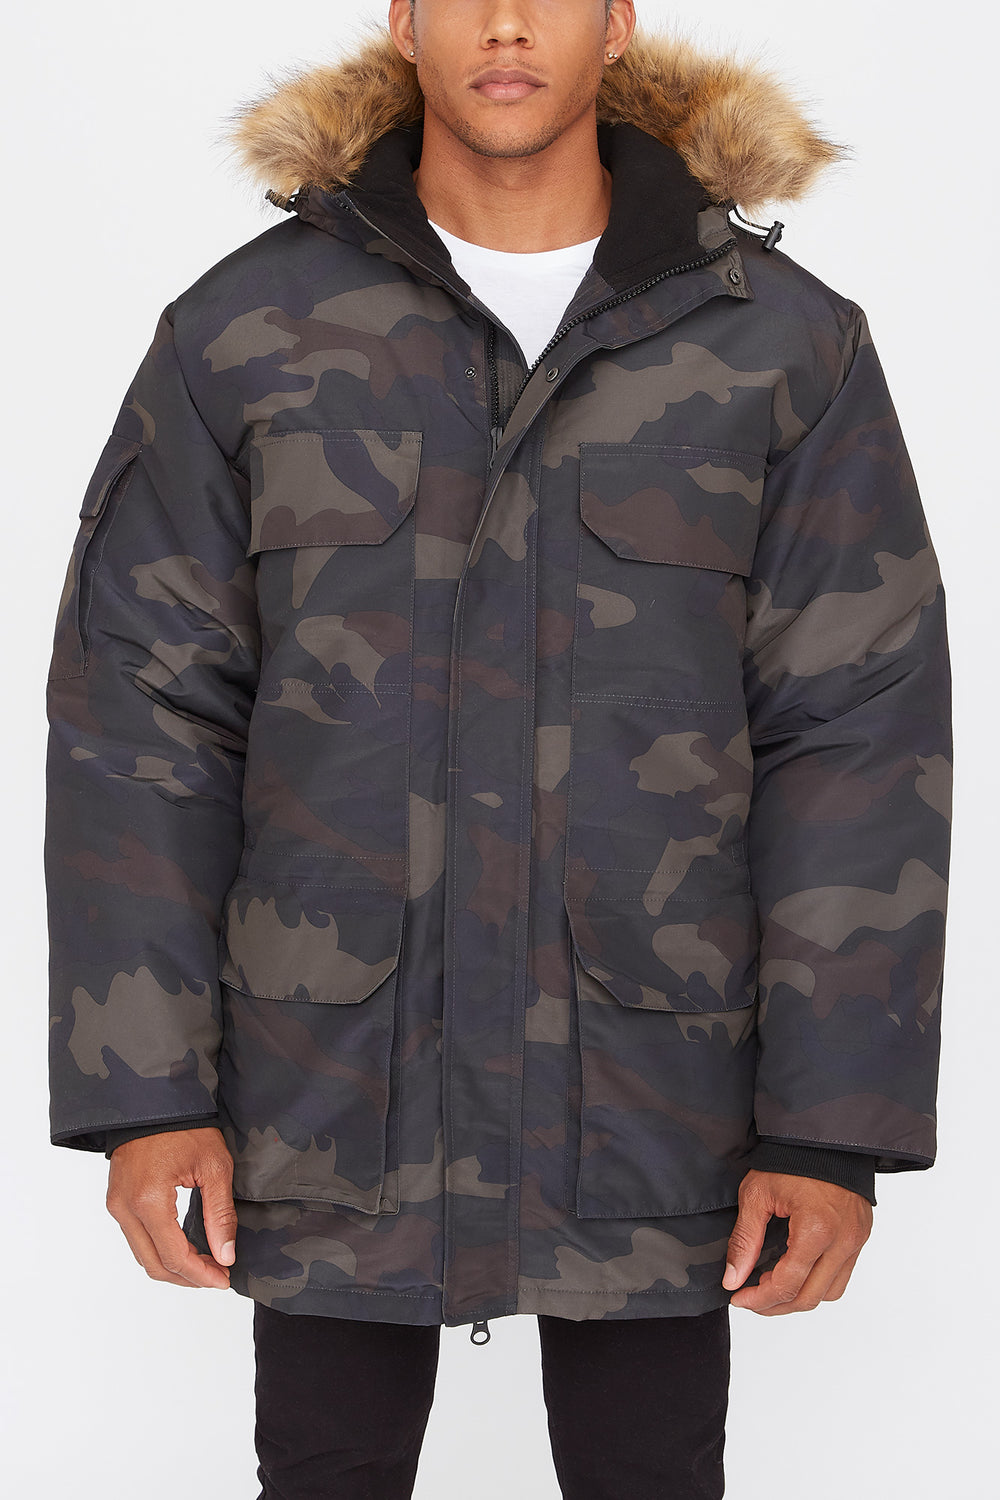 West49 Mens Parka Camouflage